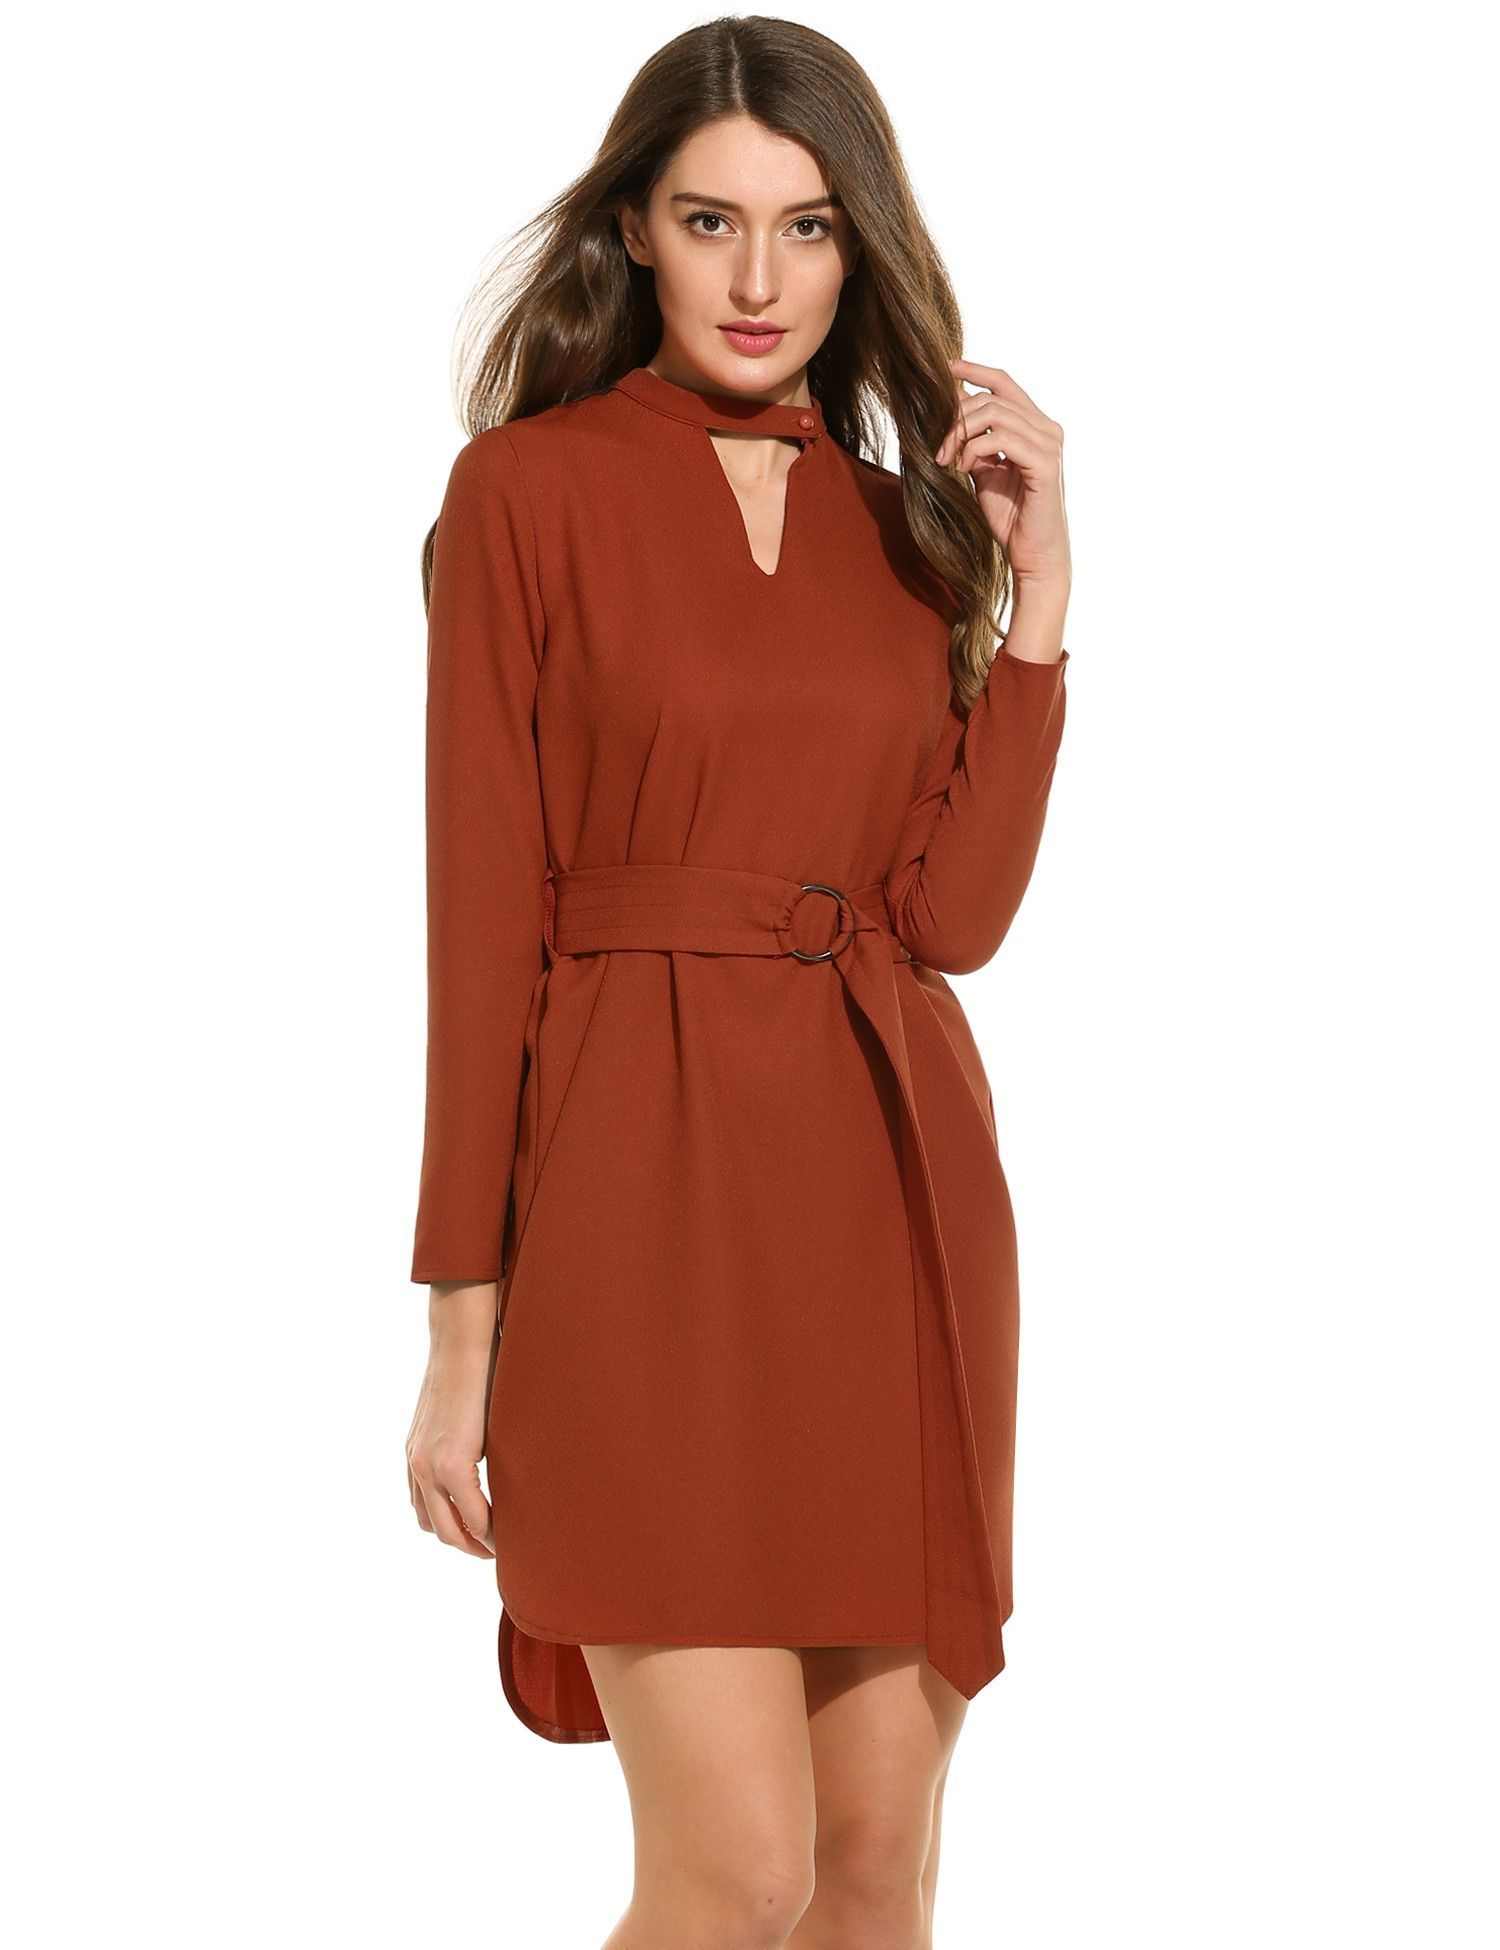 New women casual hollow out vneck long sleeve solid asymmetrical